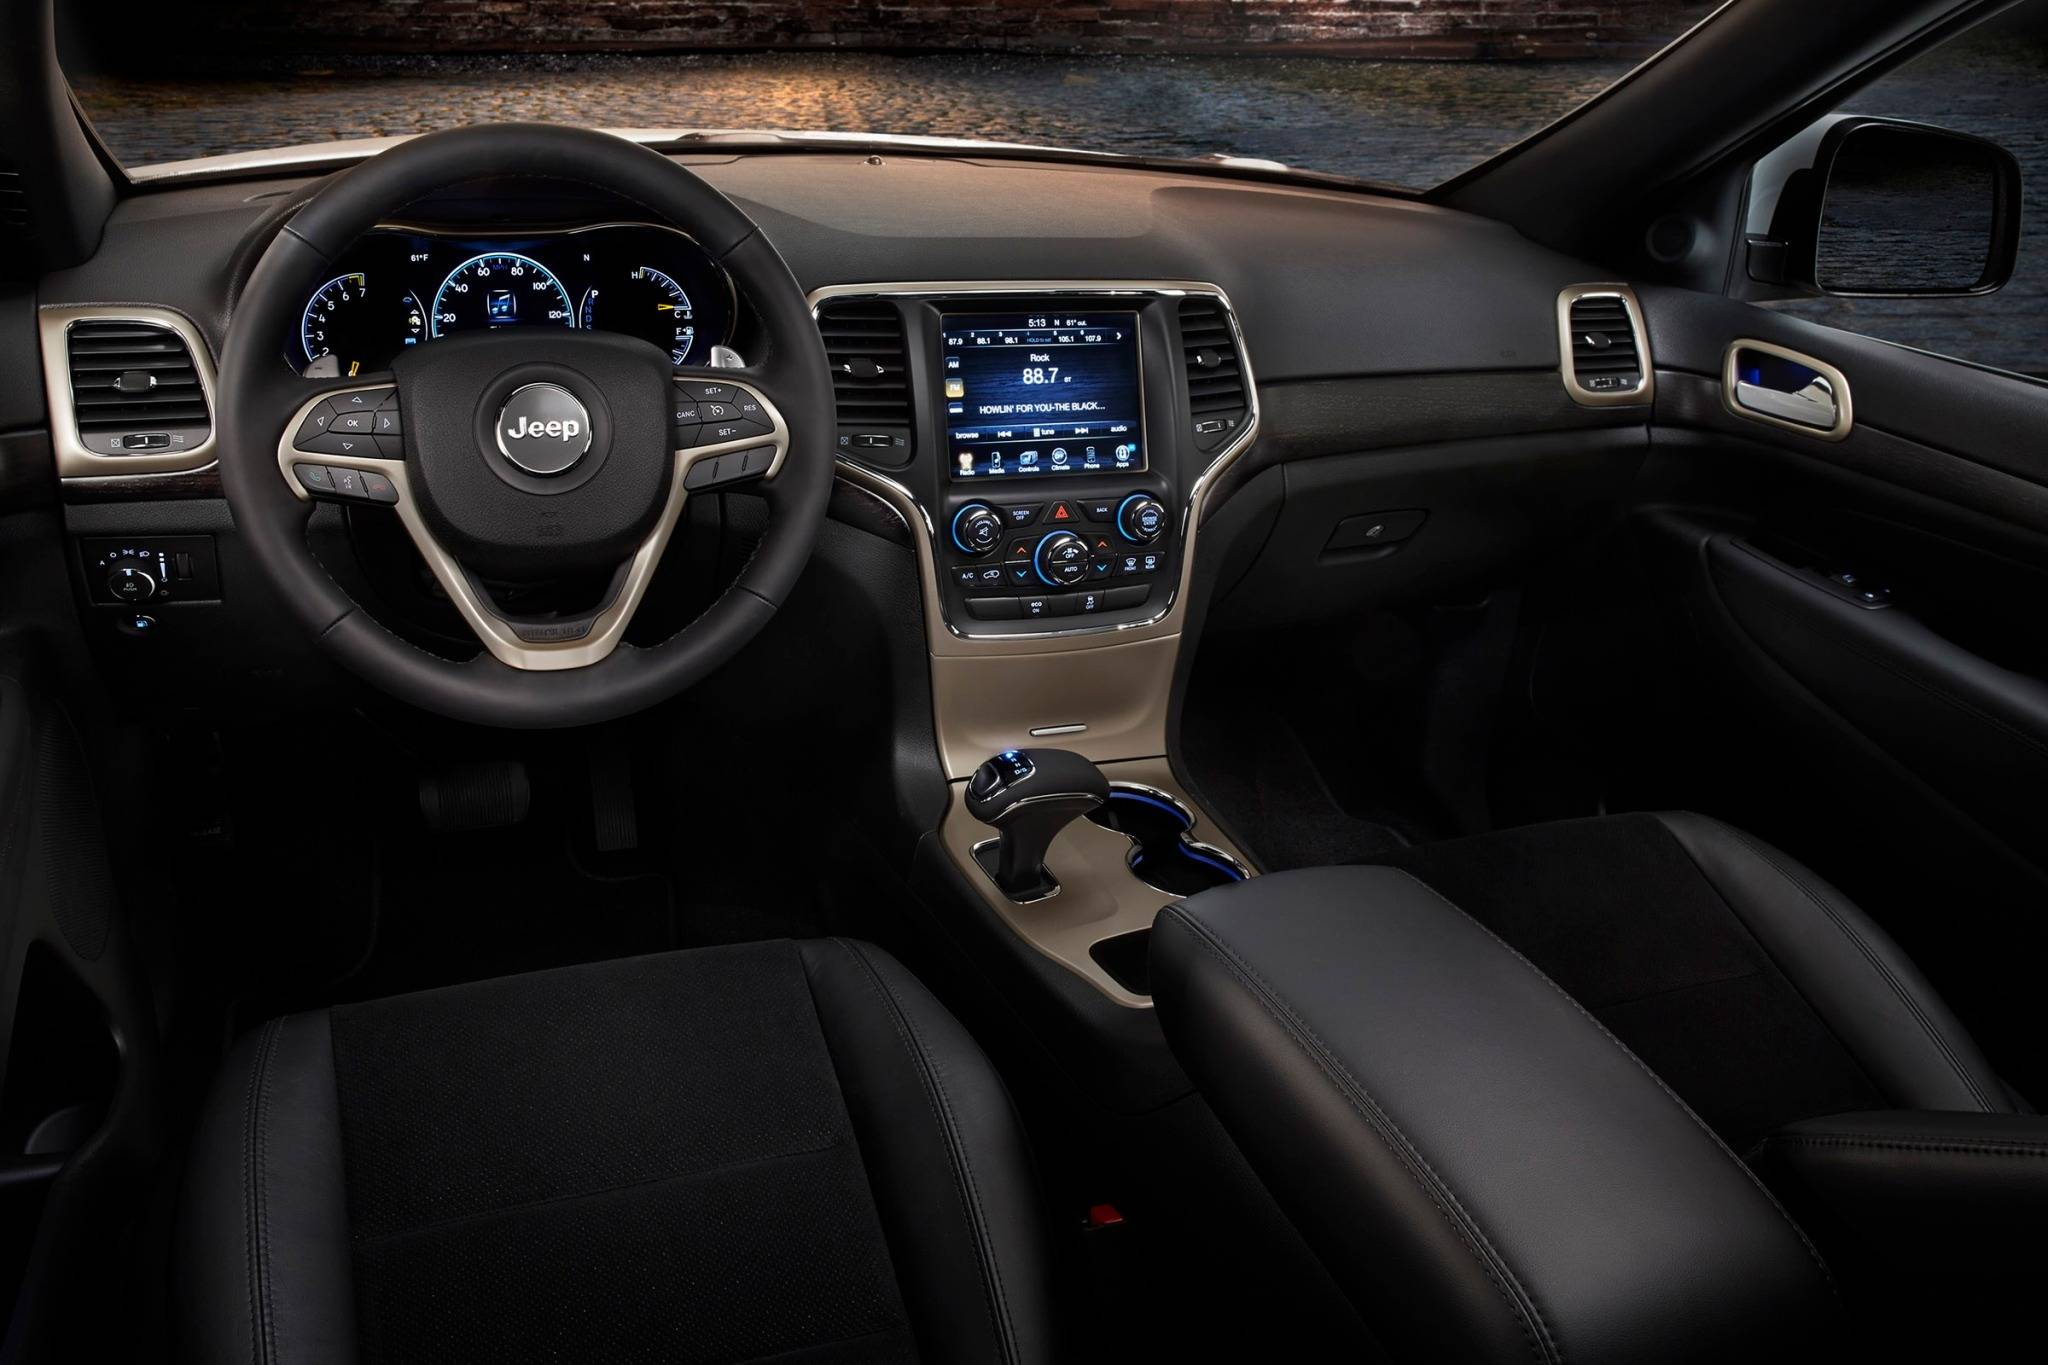 2018 Jeep Grand Cherokee VIN Number Search - AutoDetective